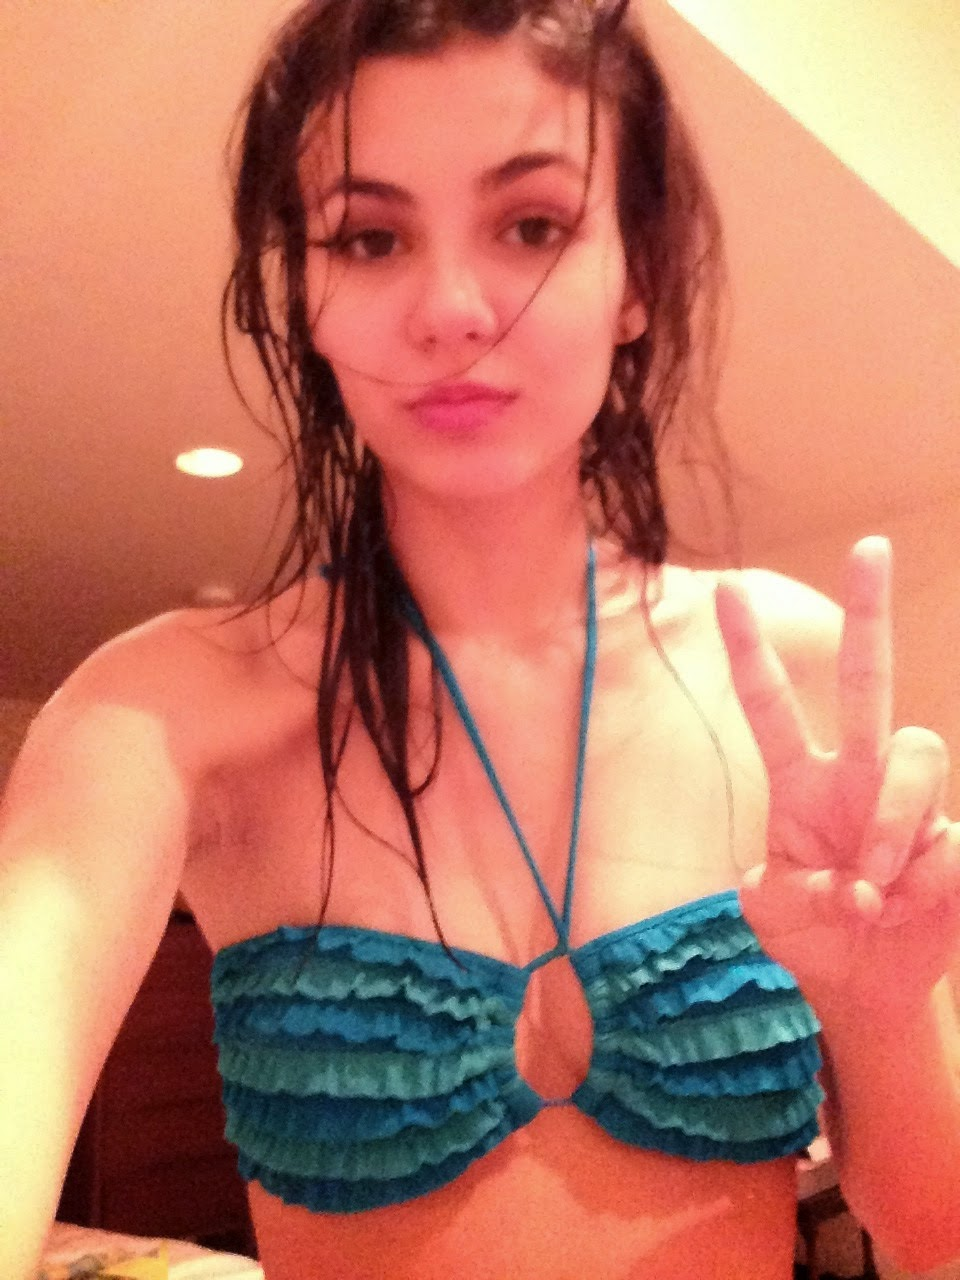 Victoria Justice Topless Photos Hacked iPhone And Leaked images